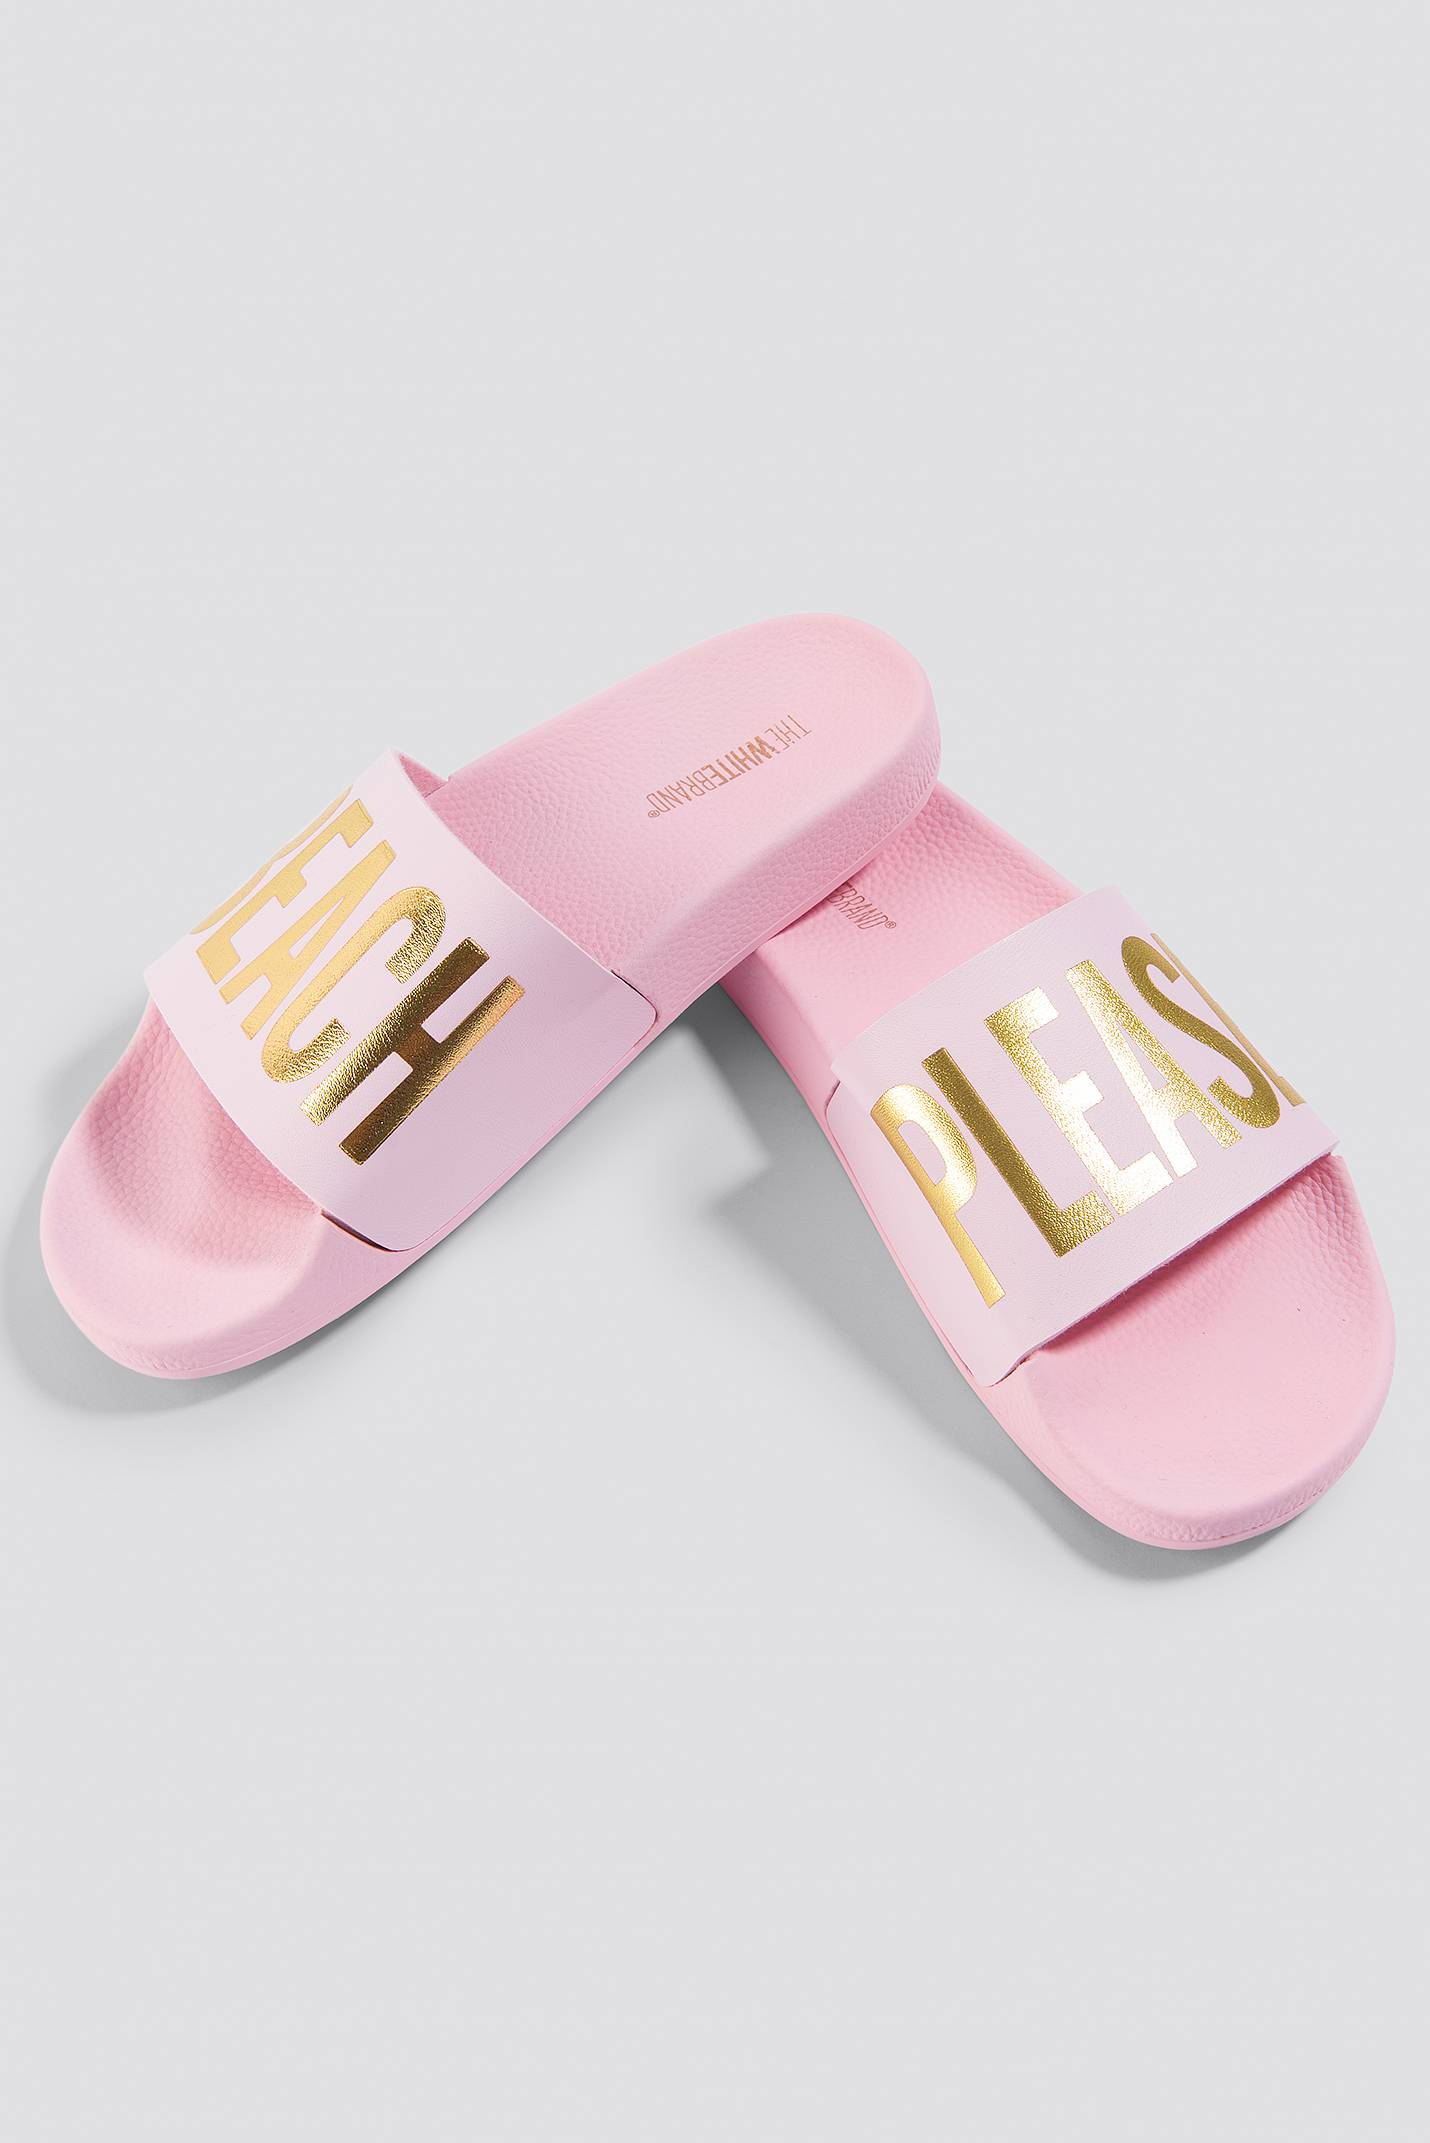 The White Brand Beach Slippers - Pink